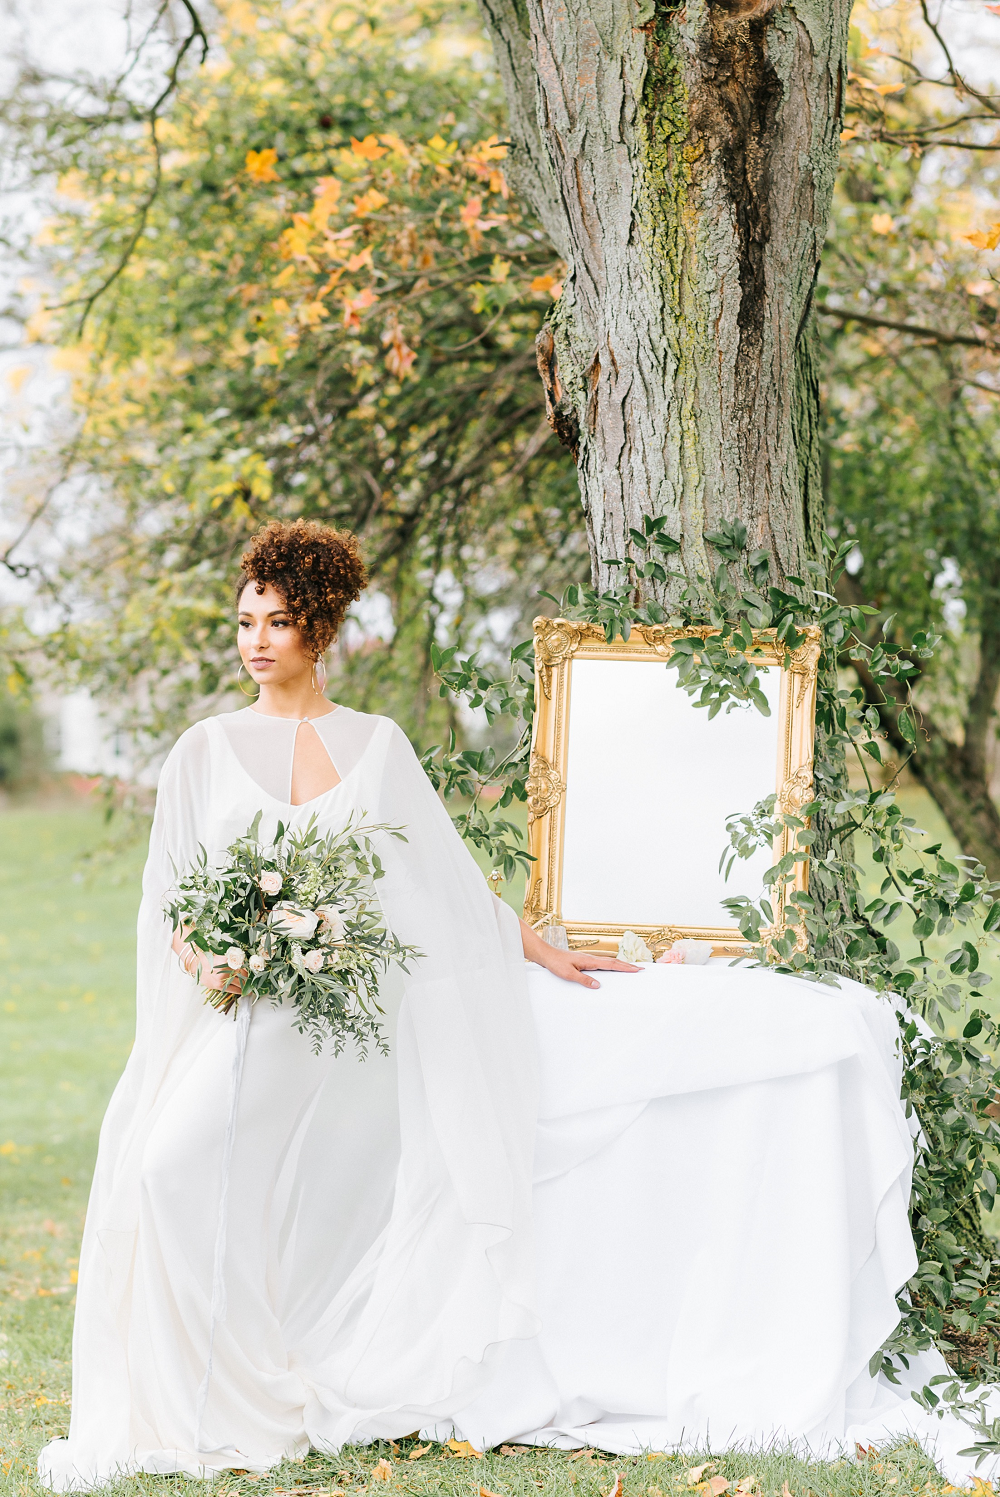 Lush Greenery Wedding Inspired Styled Shoot at Cornman Farms Bride Greenery